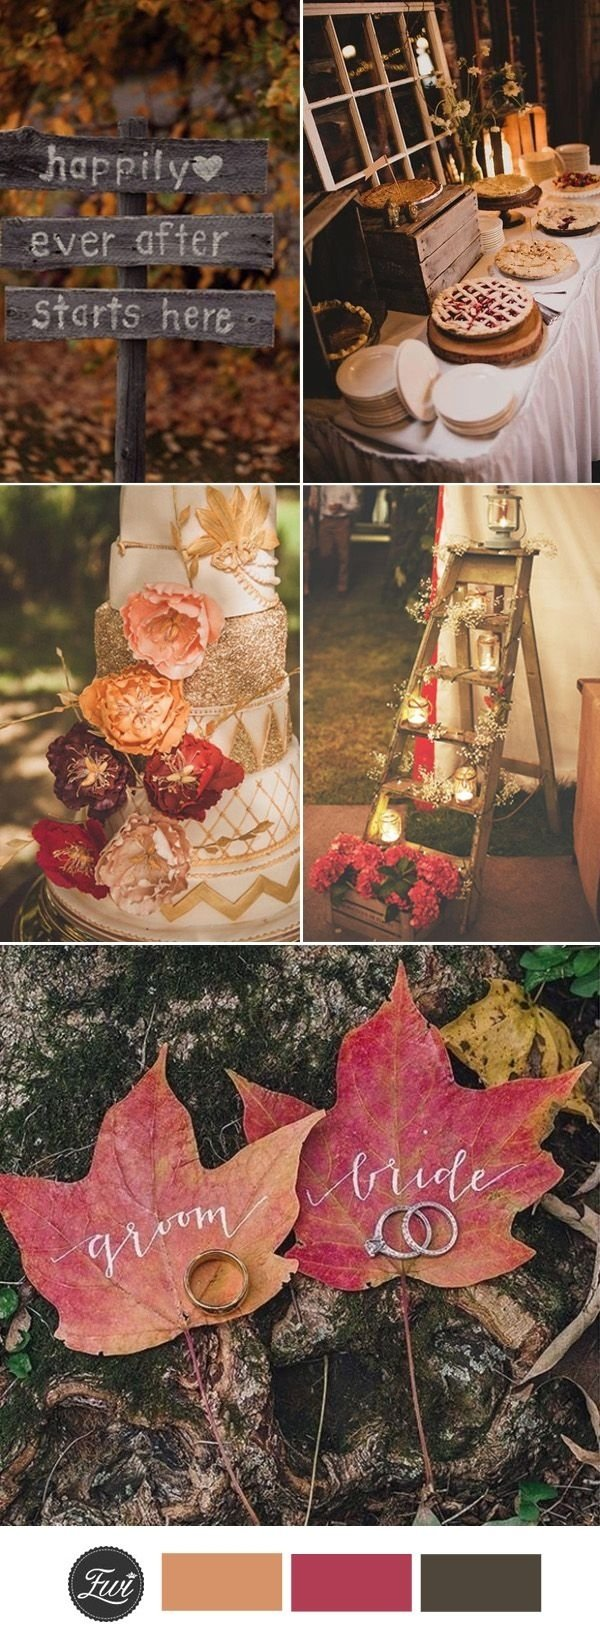 10 Amazing Country Wedding Ideas For Fall top 10 fall wedding color ideas for 2017 trends weddings wedding 2021